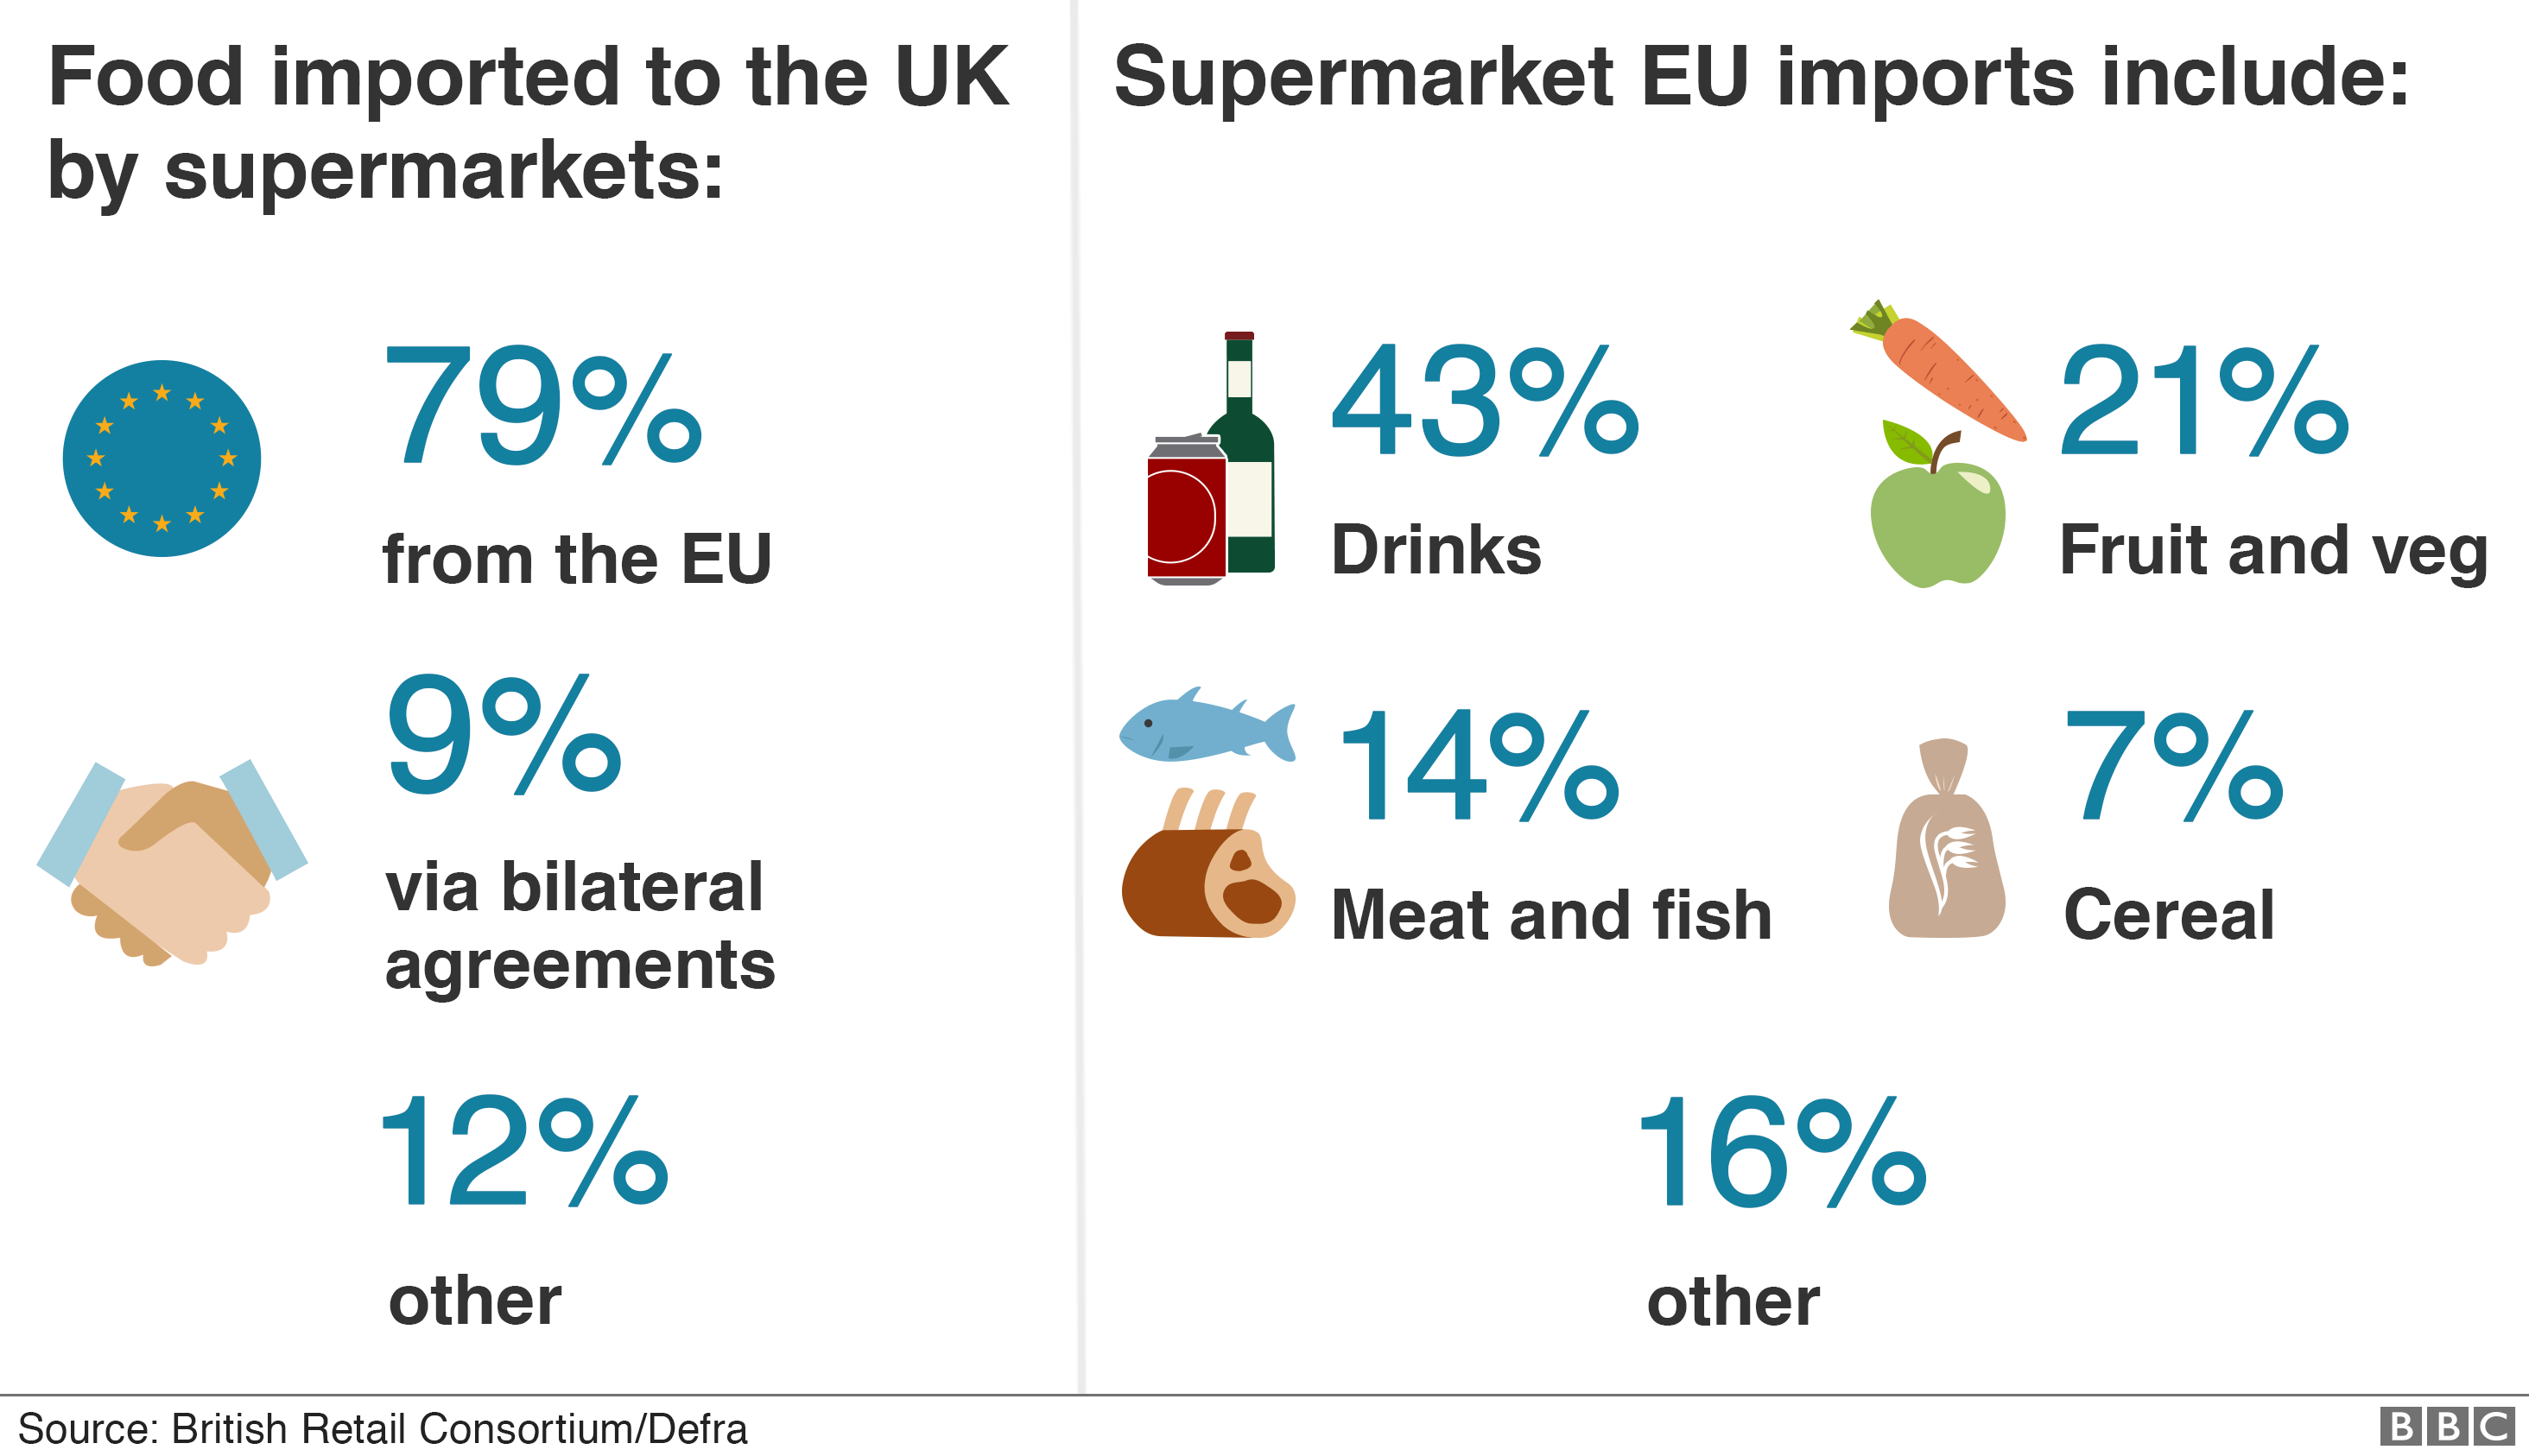 Infographic showing goods imported by supermarkets - 79% from the EU